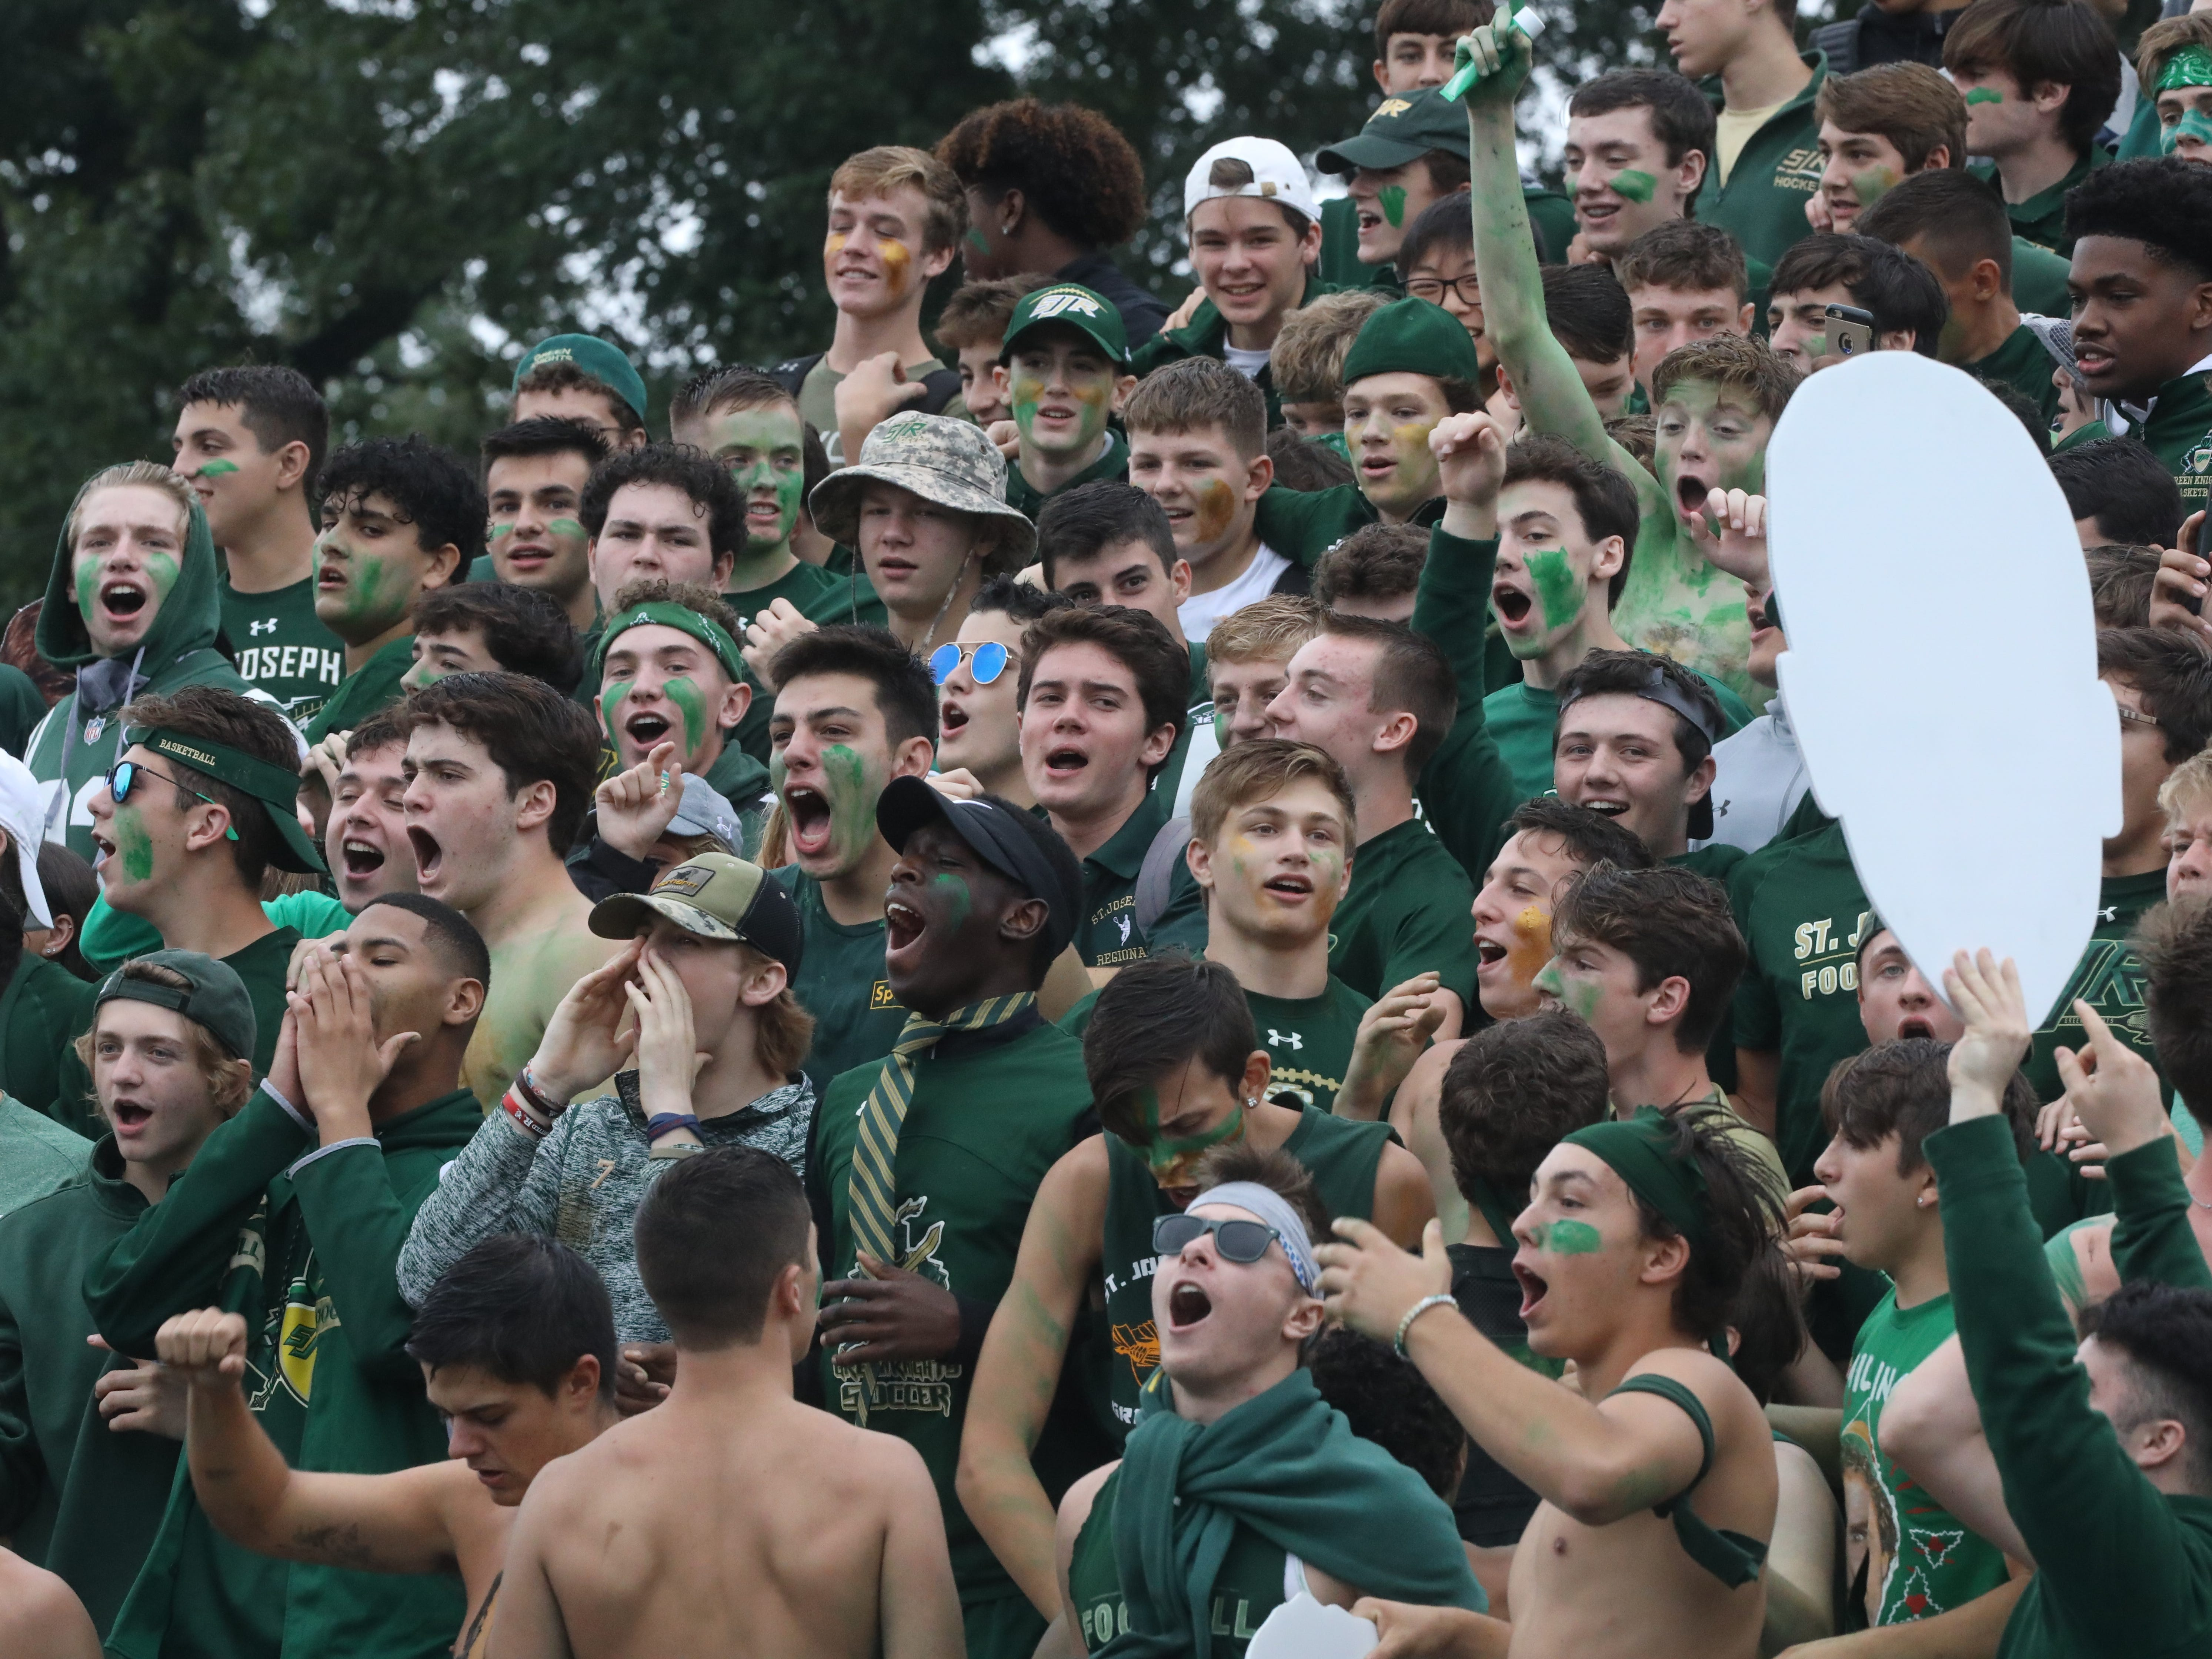 The St. Joseph sideline gets fired up before the game.